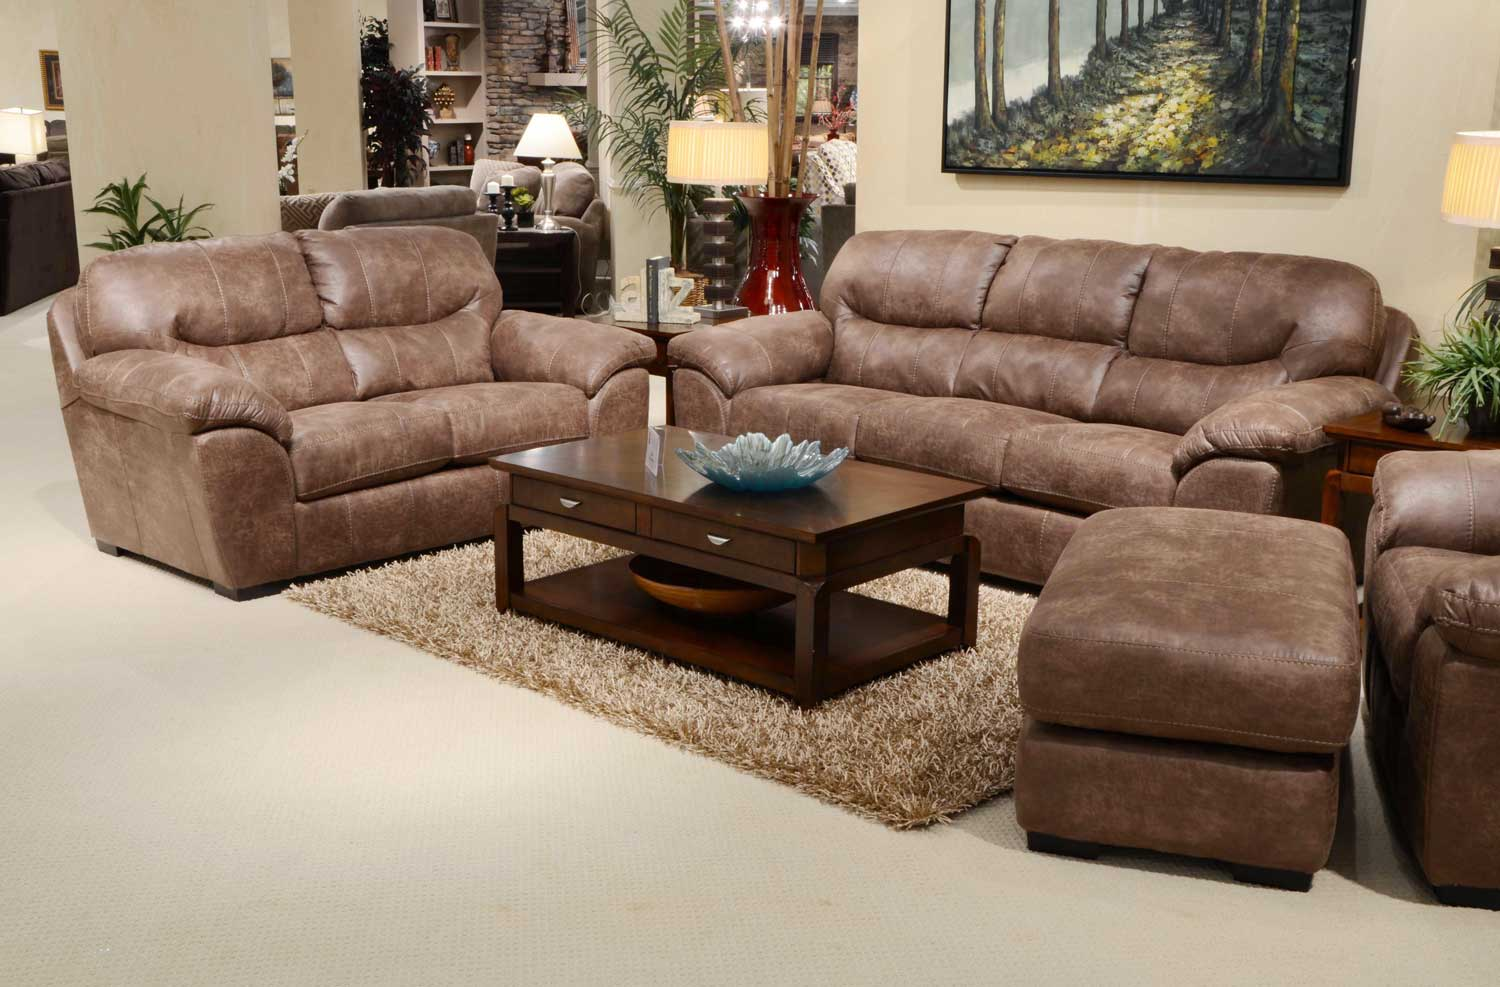 Jackson Grant Bonded Leather Sofa Set - Silt